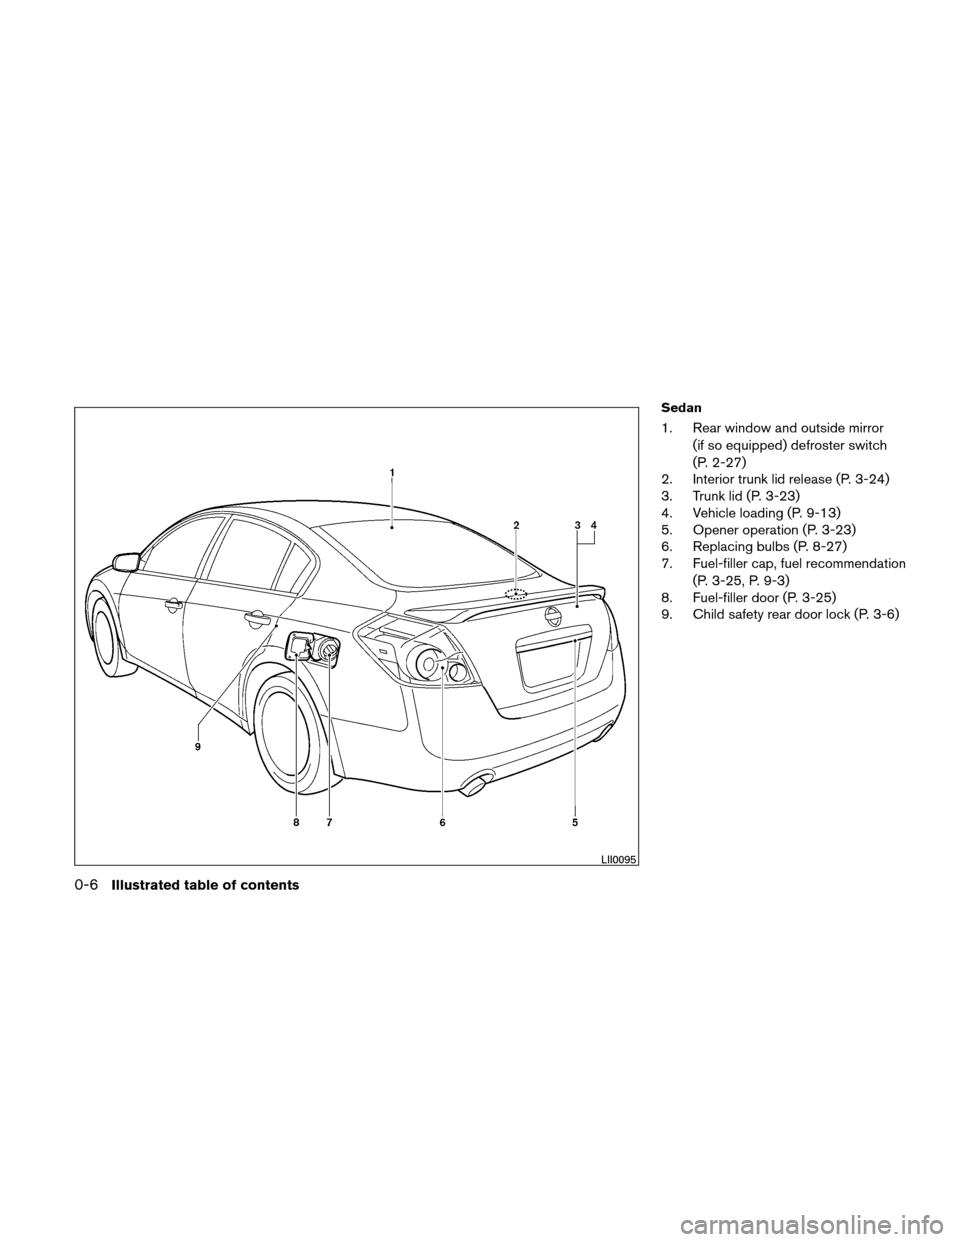 NISSAN ALTIMA COUPE 2010 D32 / 4.G Owners Manual, Page 13